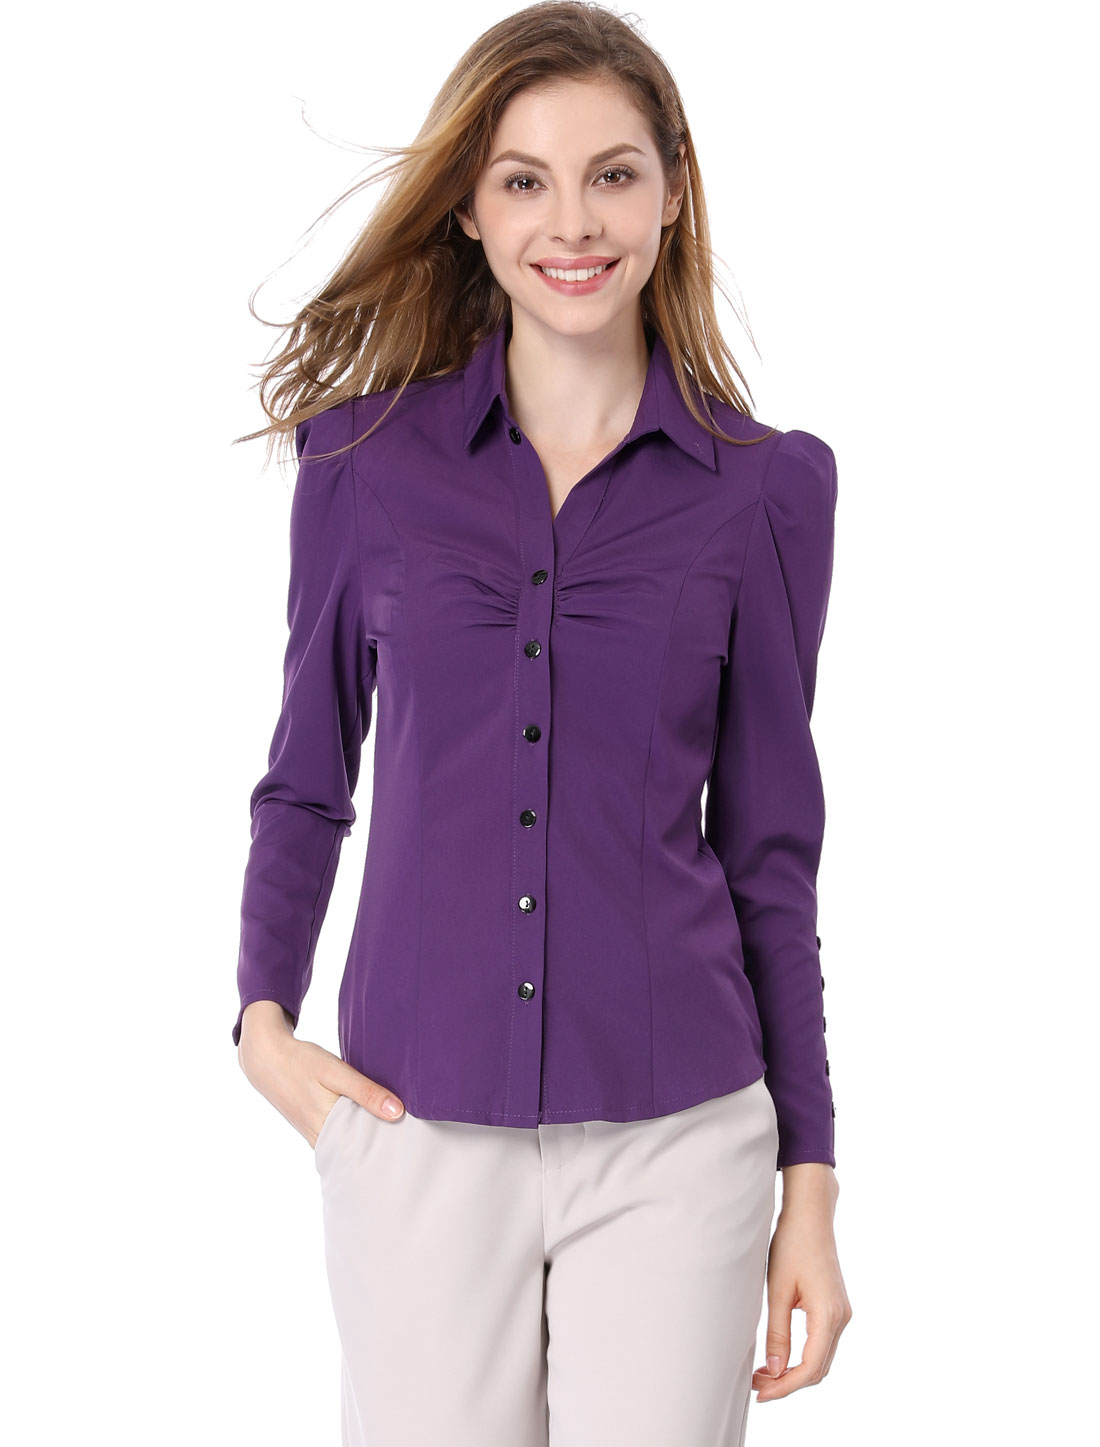 Women Point Collar Long Sleeve Button Decor Cuffs Shirt Purple S